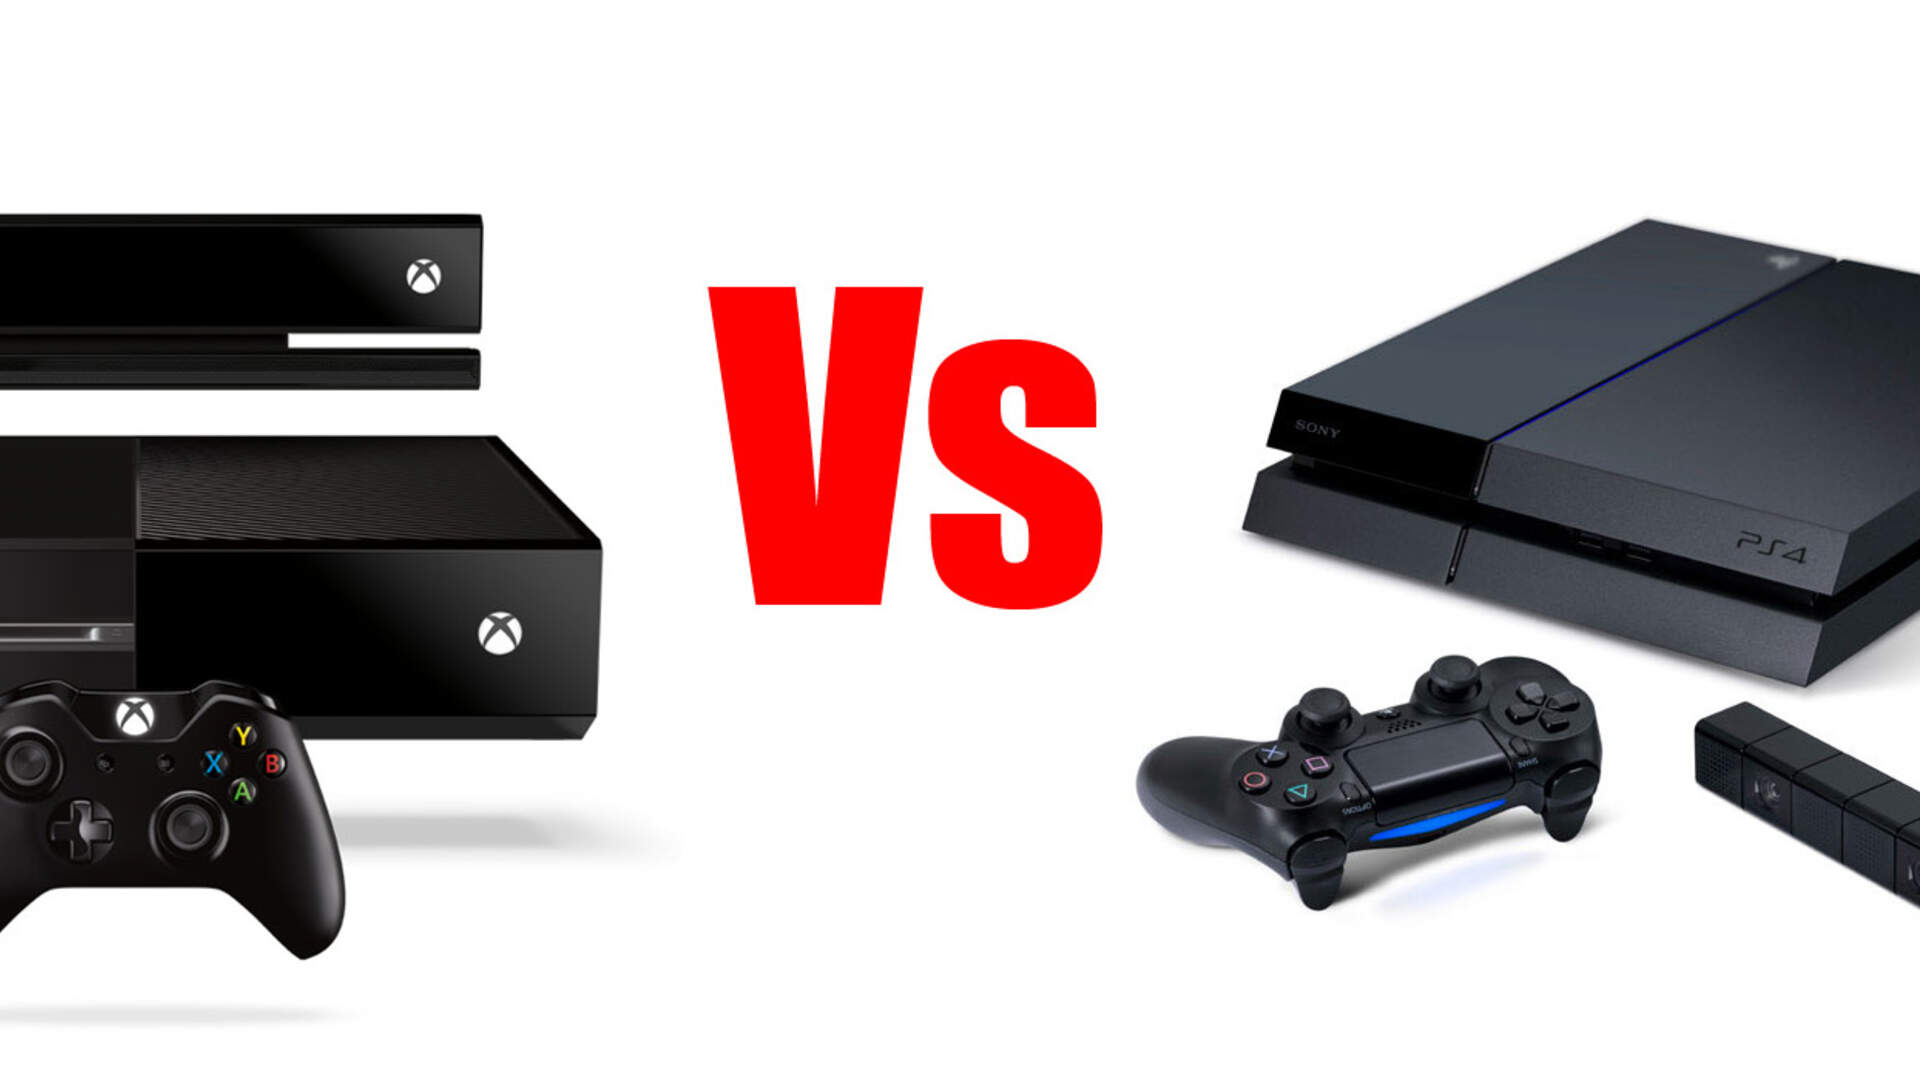 Xbox One vs. PS4: How Useful Are They As Entertainment Systems?